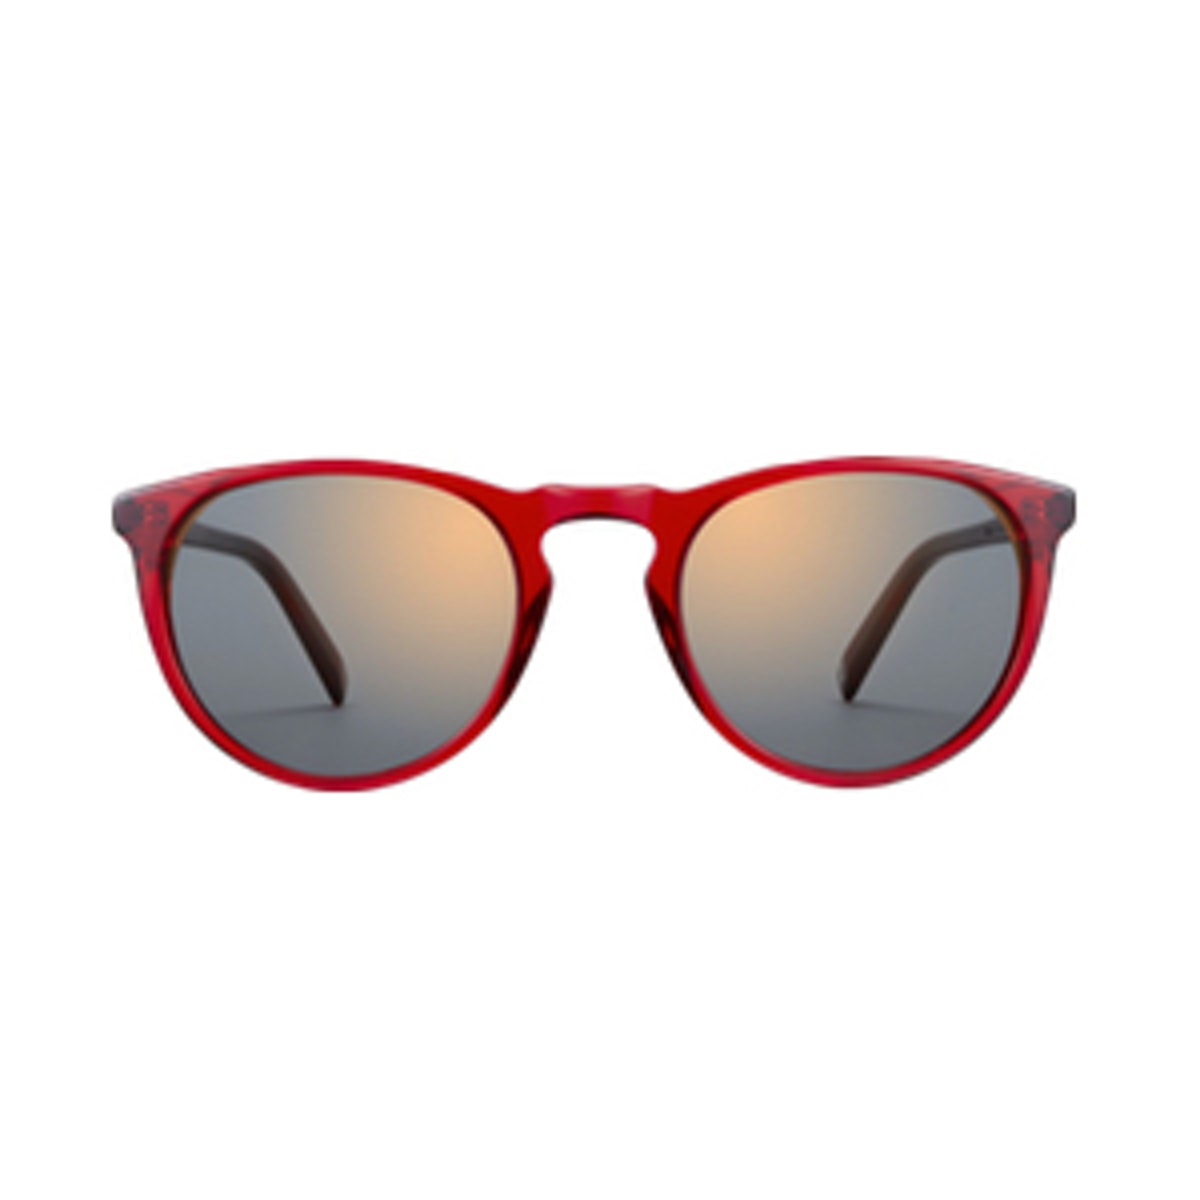 Haskell Glasses